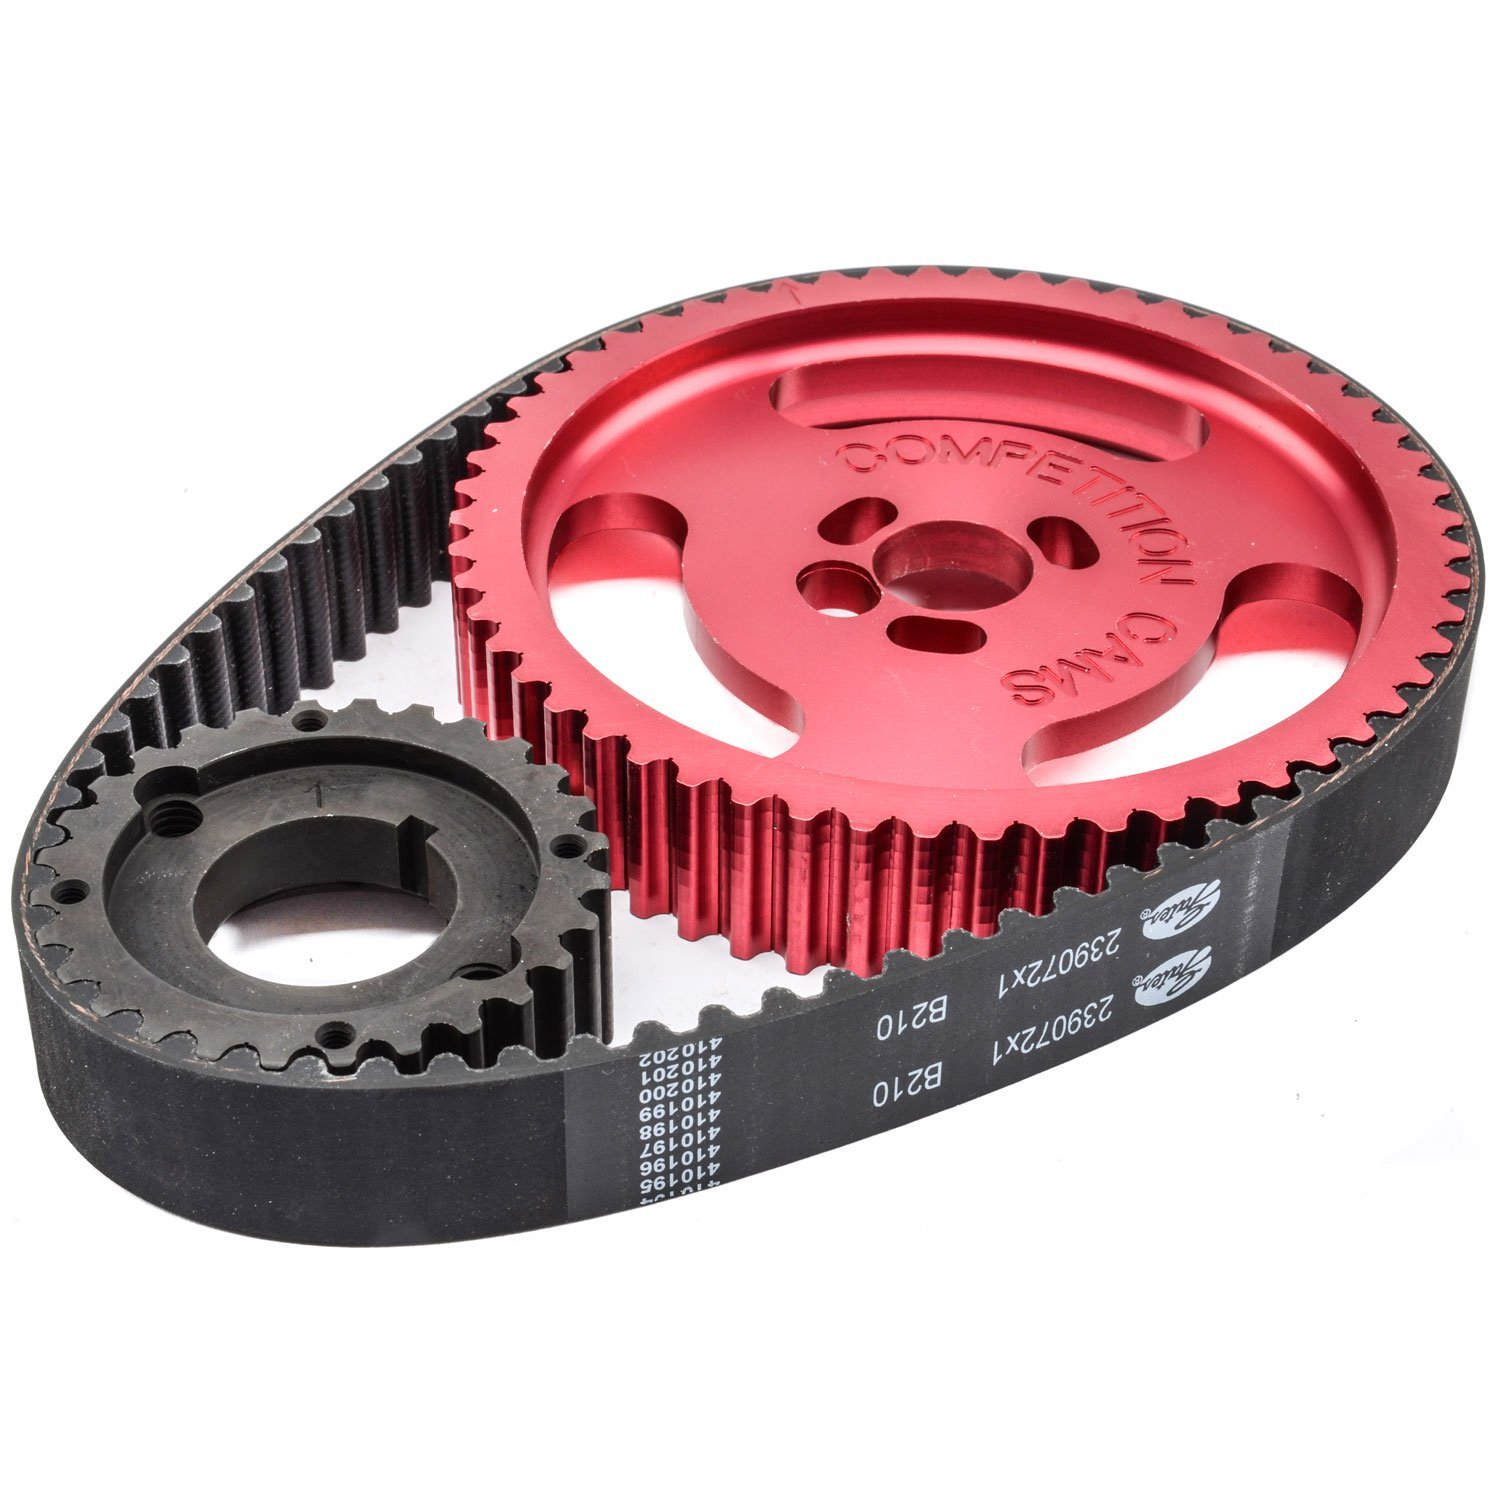 COMP Cams 5100 Wet Belt Drive System for Small Block Chevy by Comp Cams (Image #1)